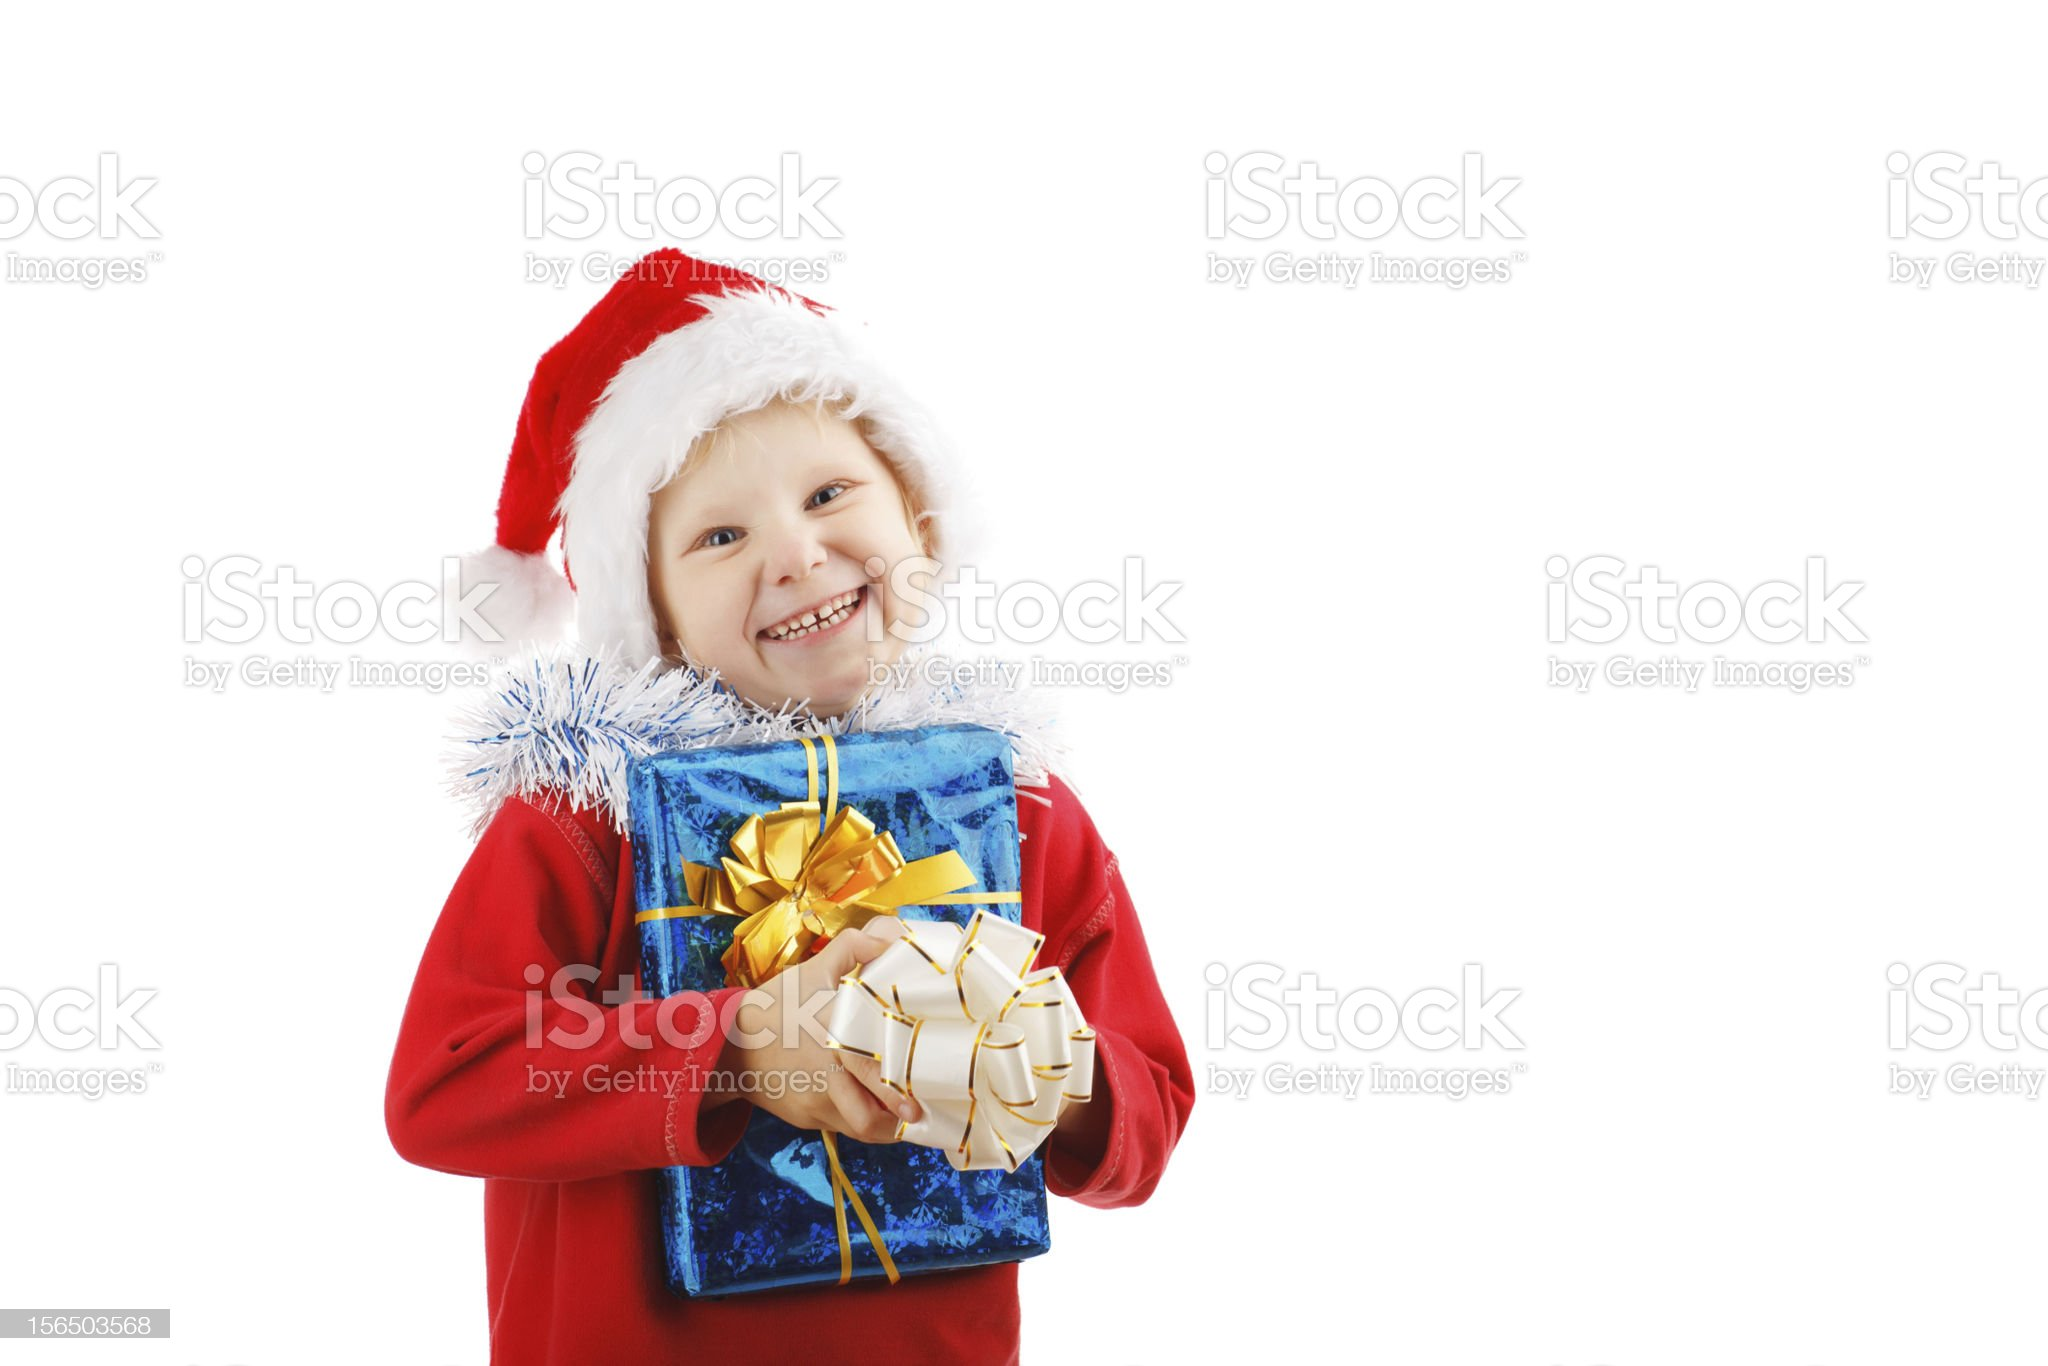 child with Christmas presents royalty-free stock photo